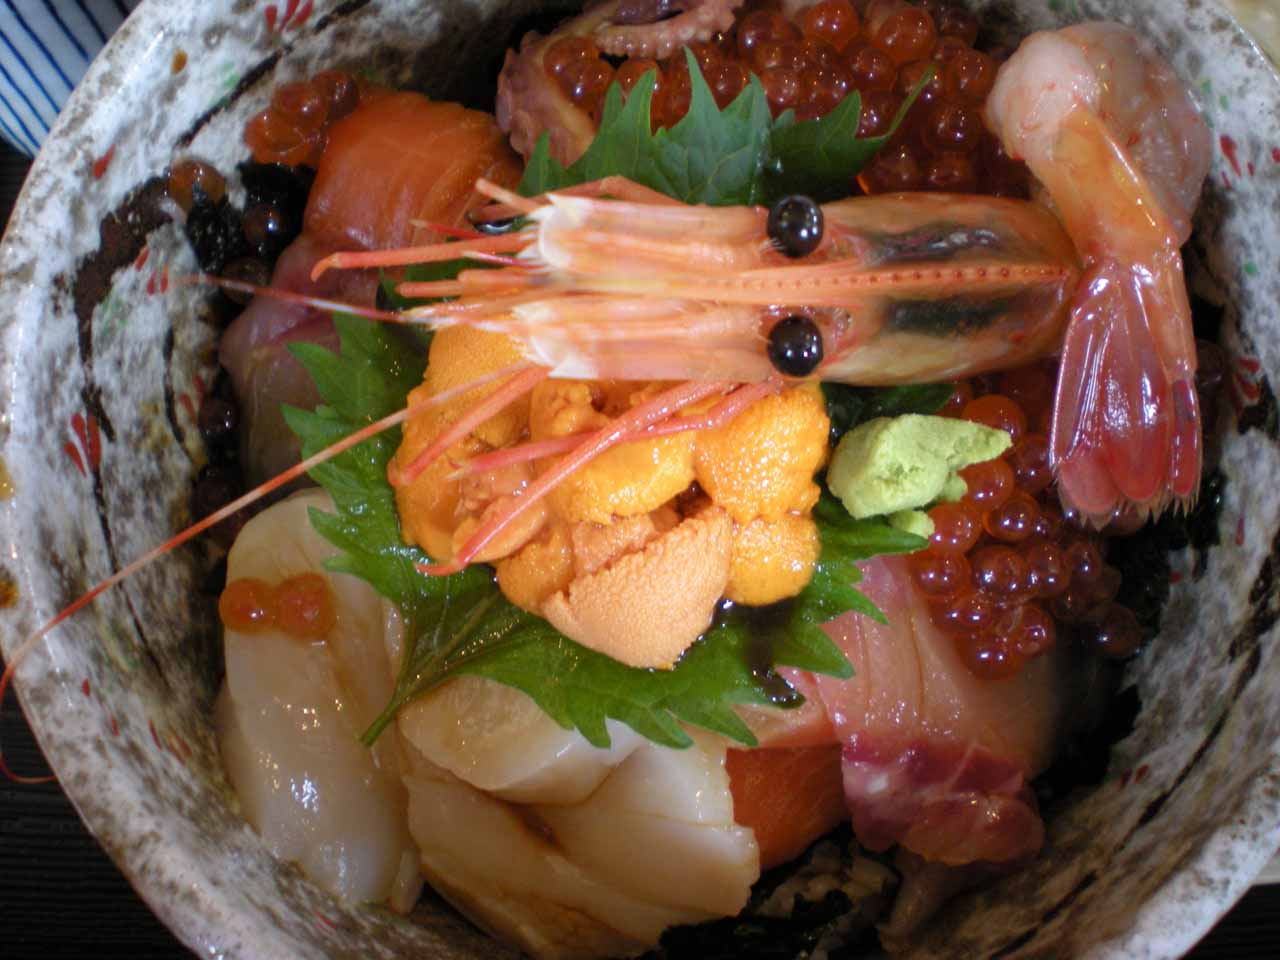 When we were done with our boat tour, we had lunch at a very good place in Utoro where we got this seafood sashimi rice bowl that could very well have been the freshest we had ever eaten